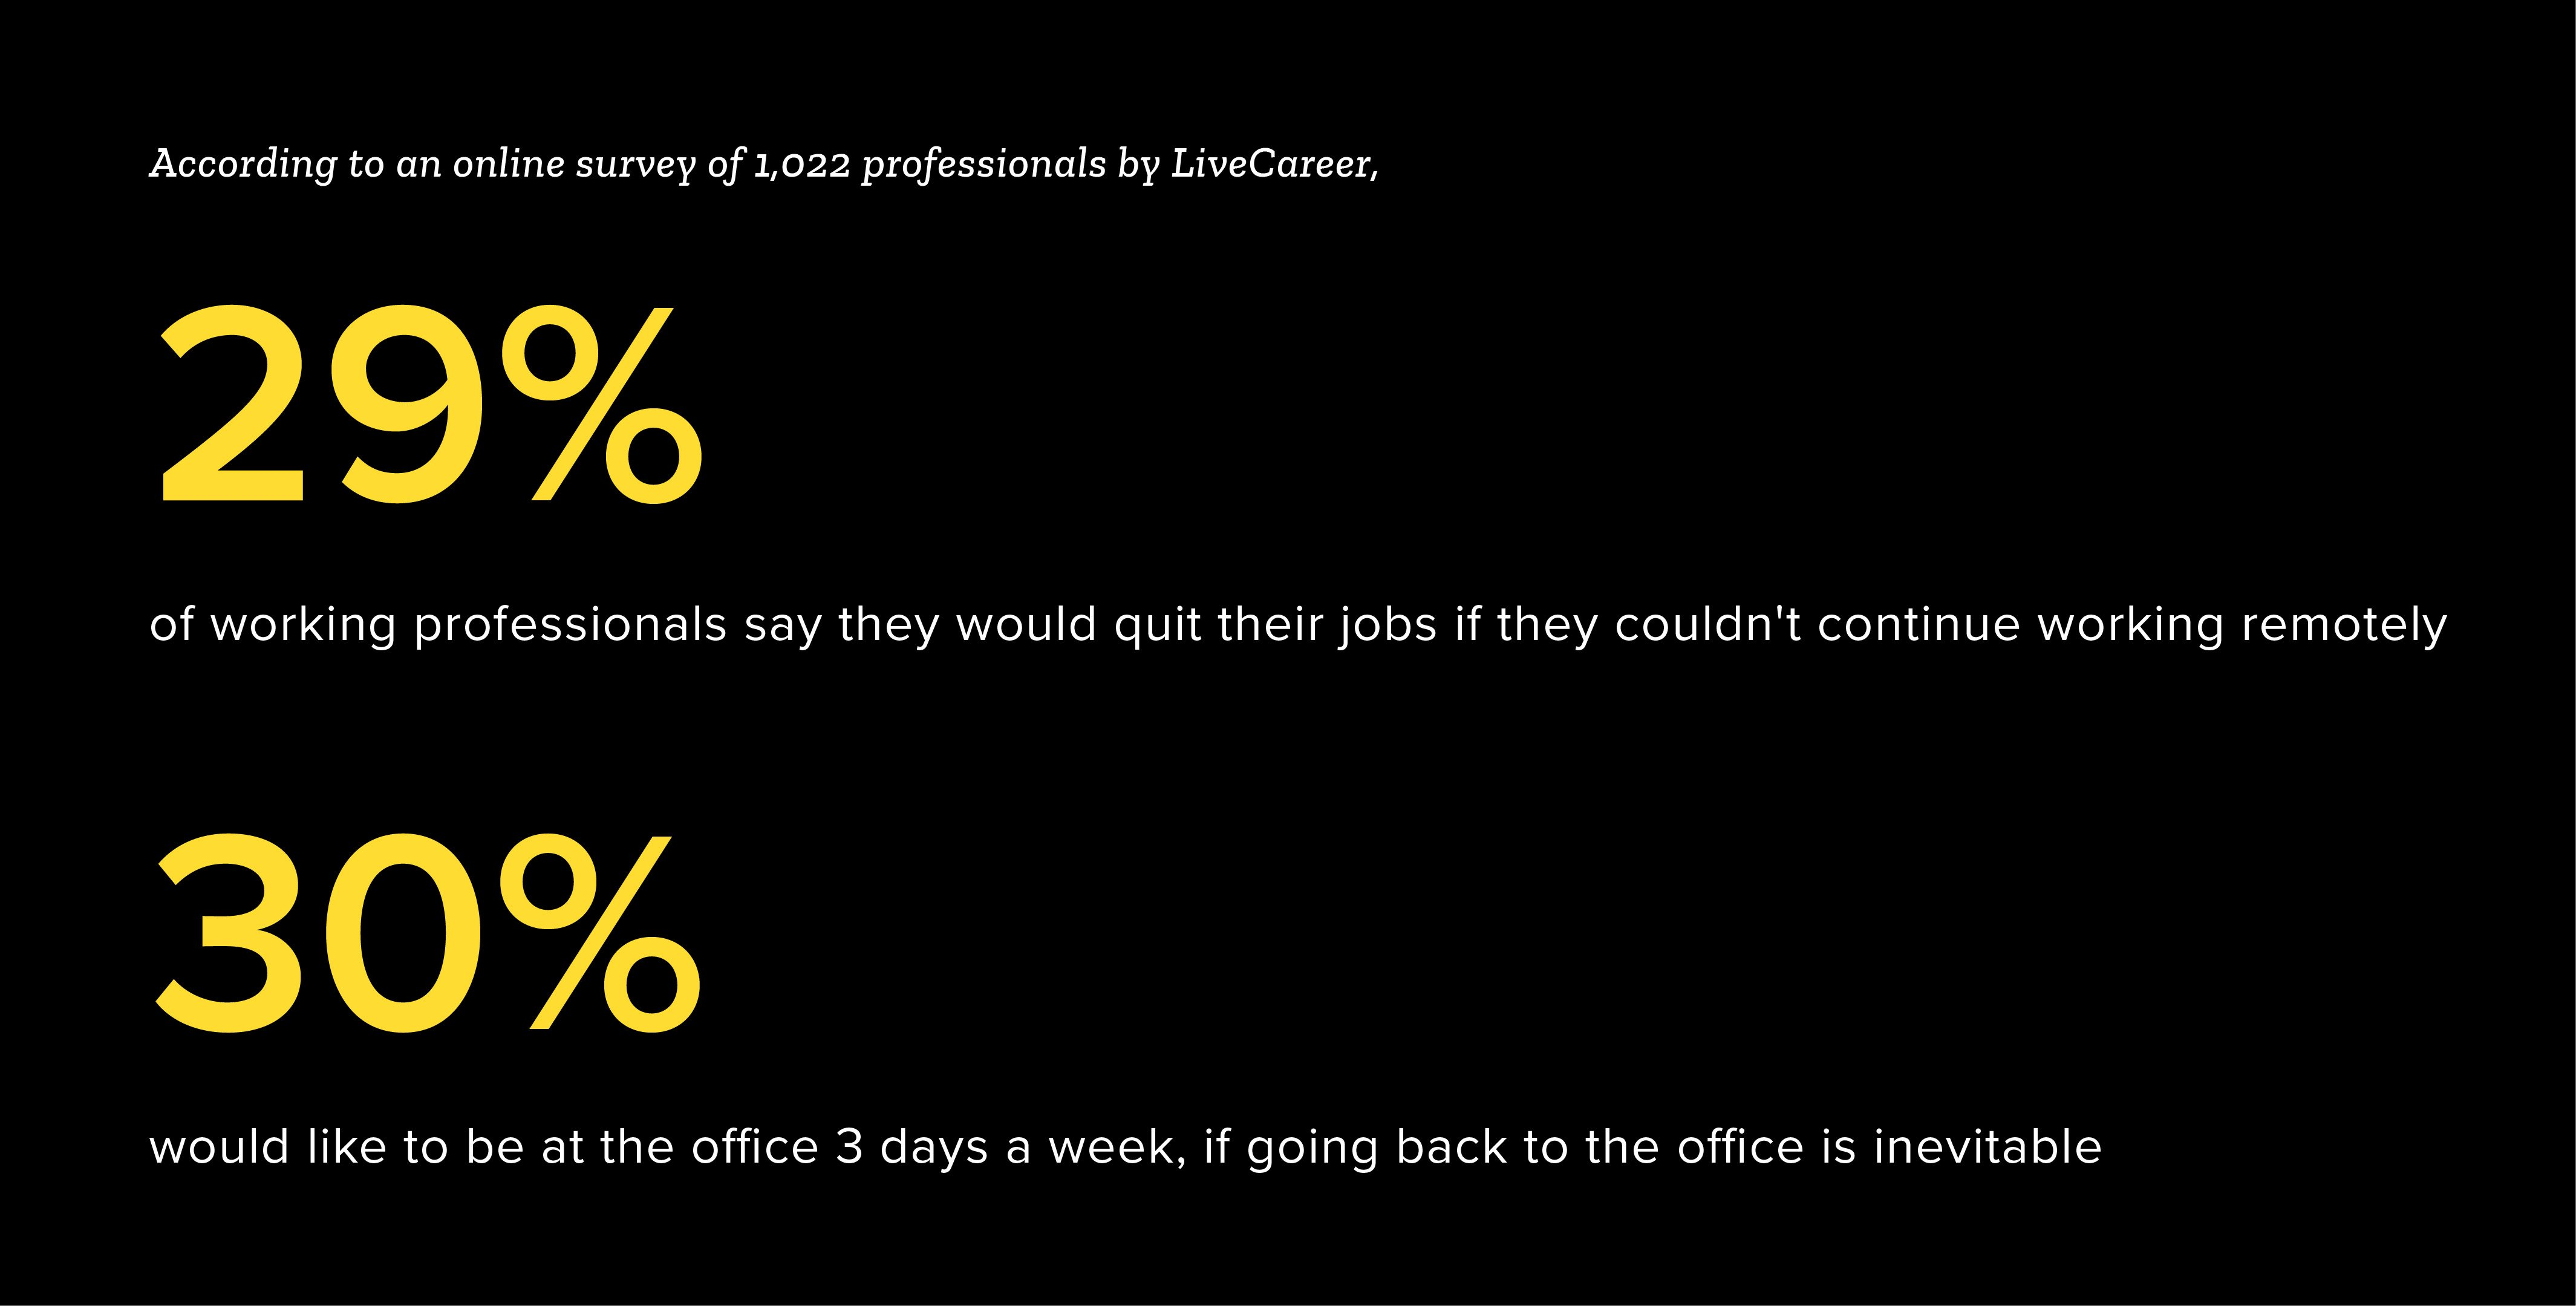 According to an online survey of 1,022 professionals by LiveCareer, 29% of working professionals say they would quit their jobs if they couldn't continue working remotely. 30% would like to be at the office 3 days a week, if going back to the office is inevitable.